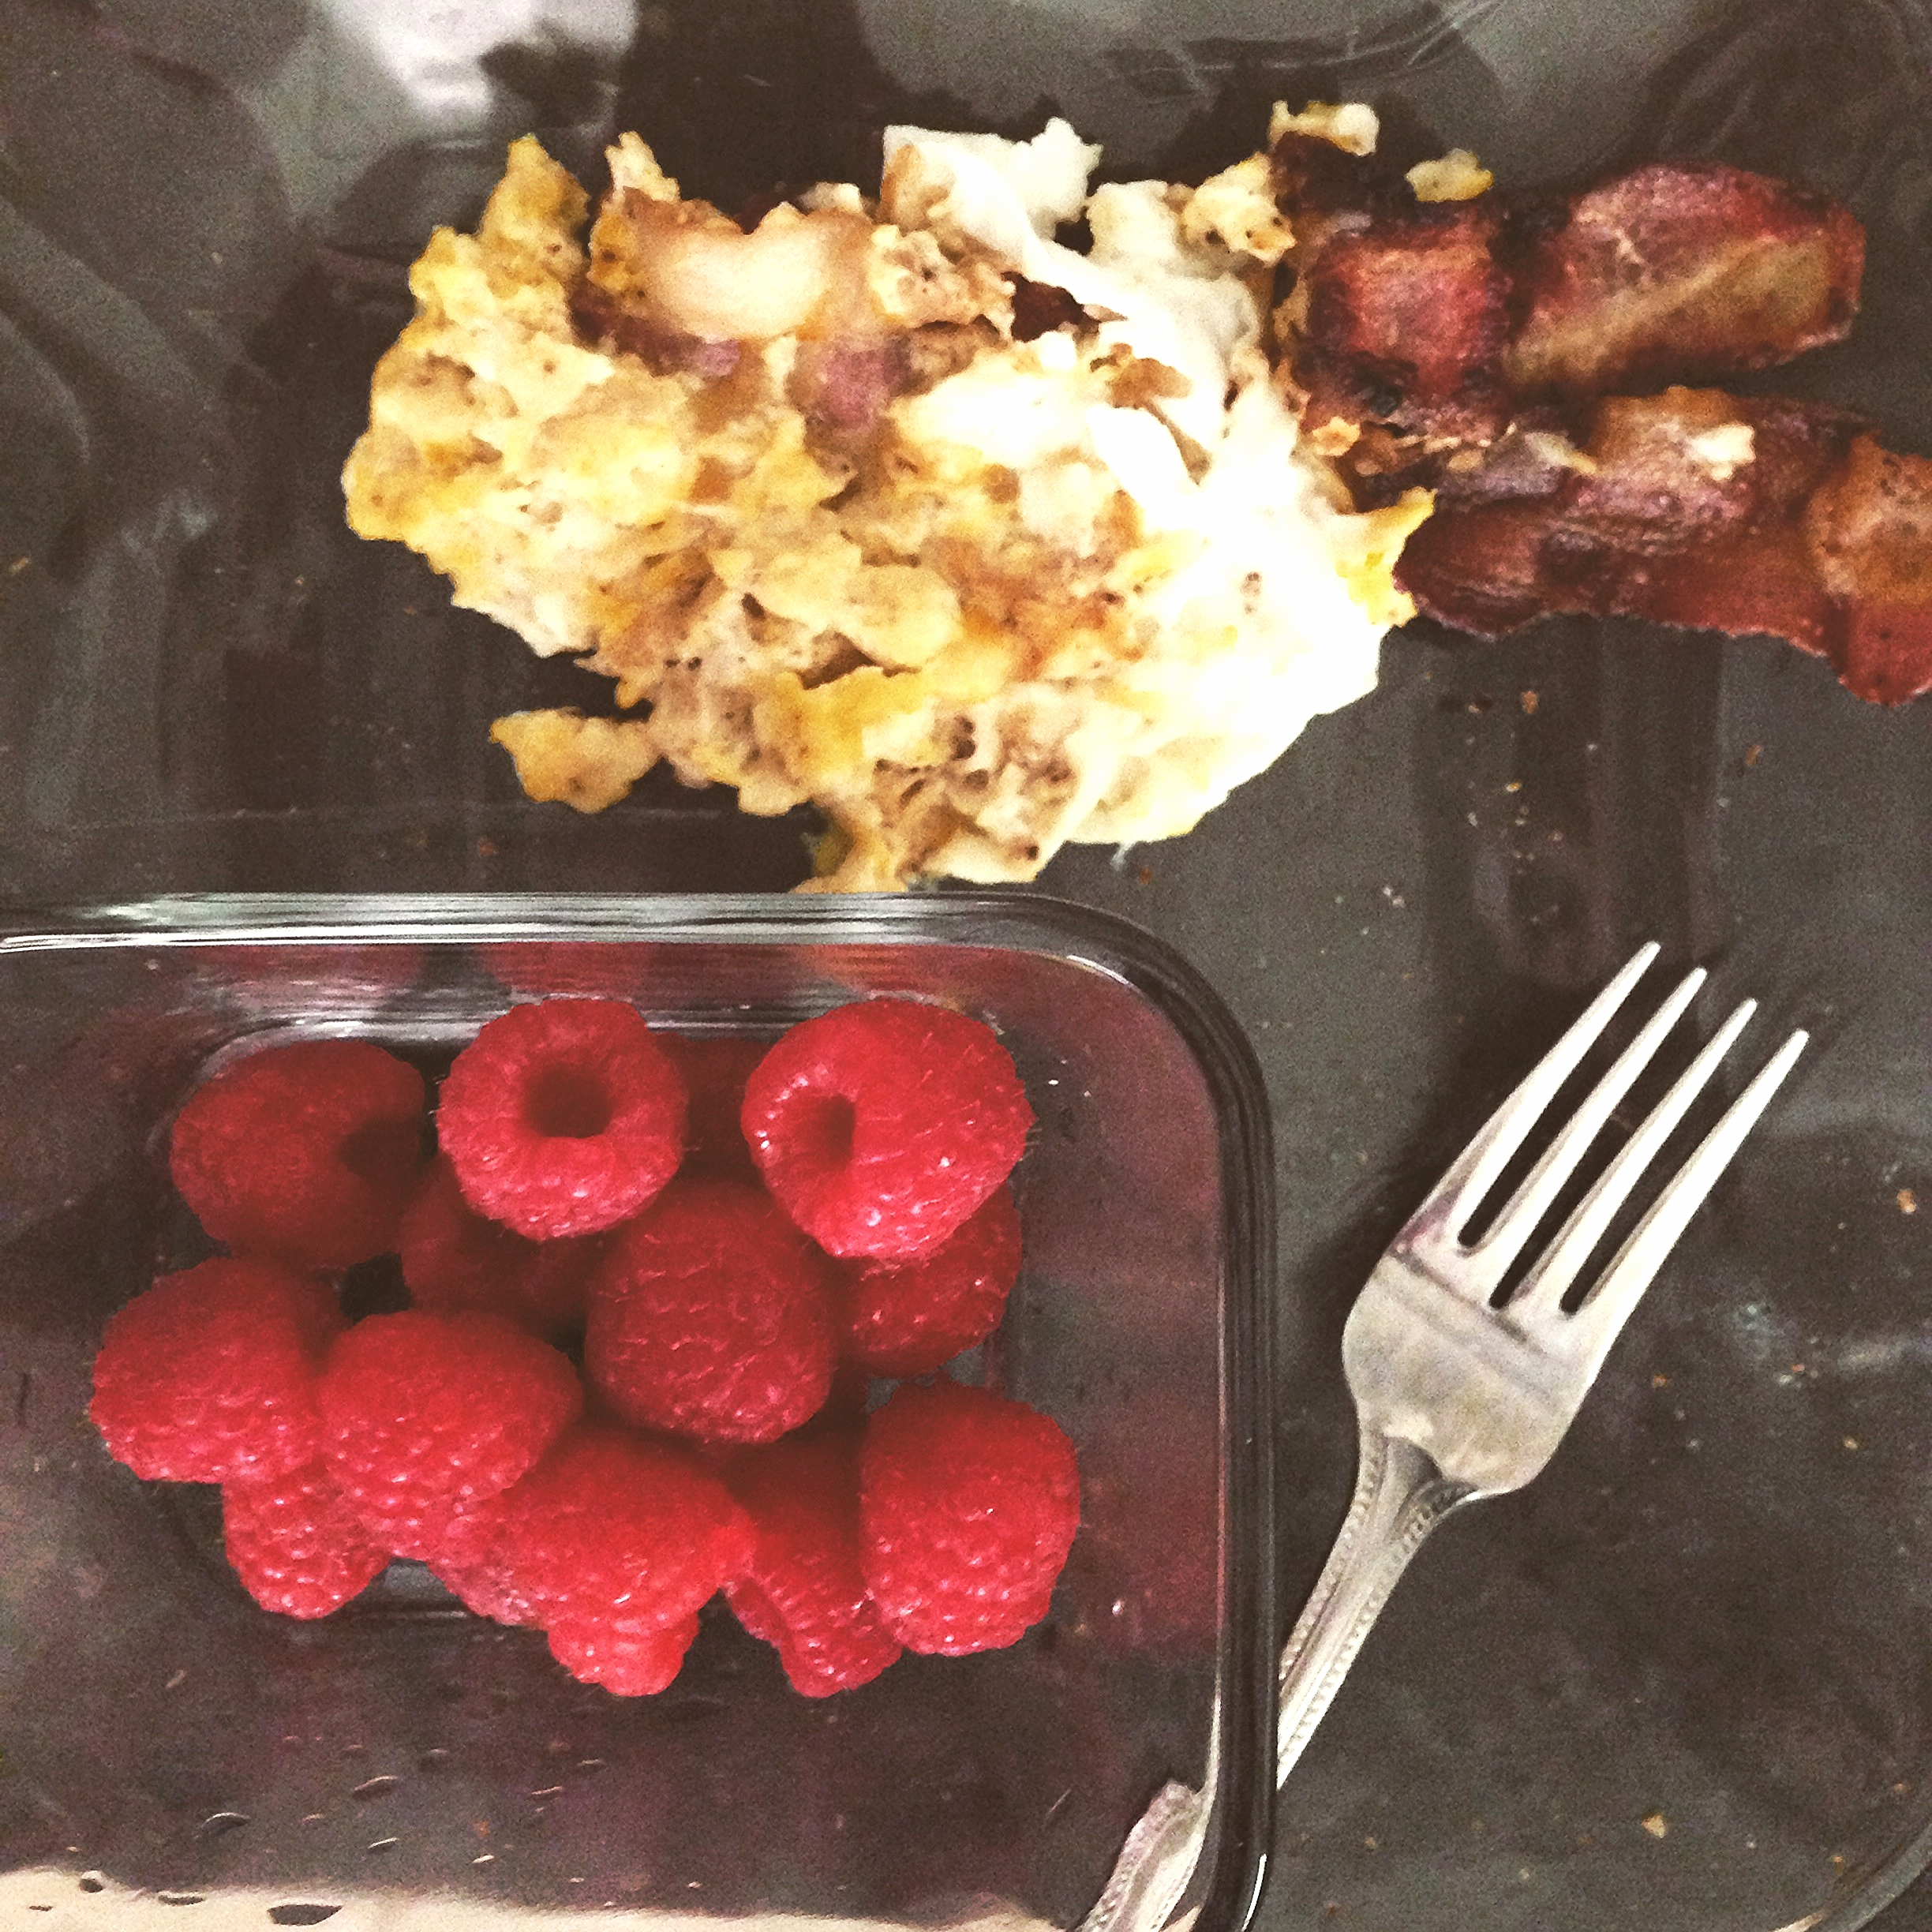 Breakfast: Scrambled eggs, Bacon, Raspberries!